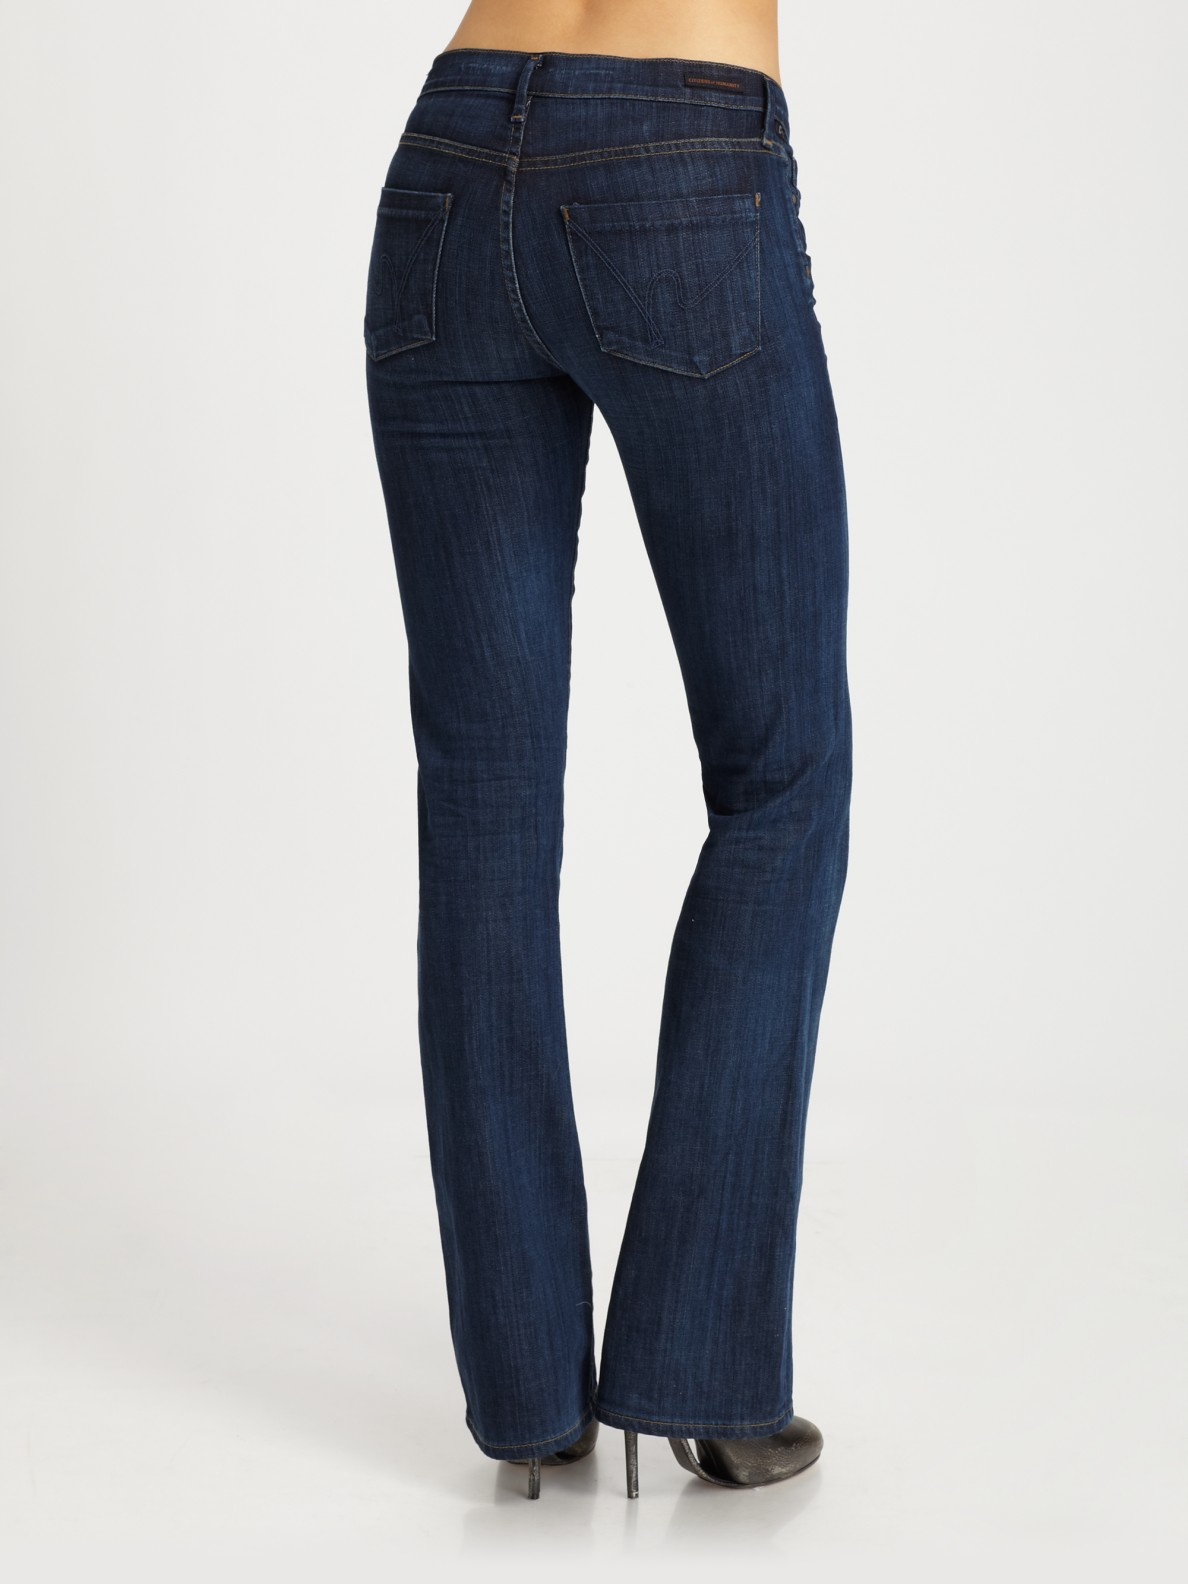 Amber mid rise bootcut jeans